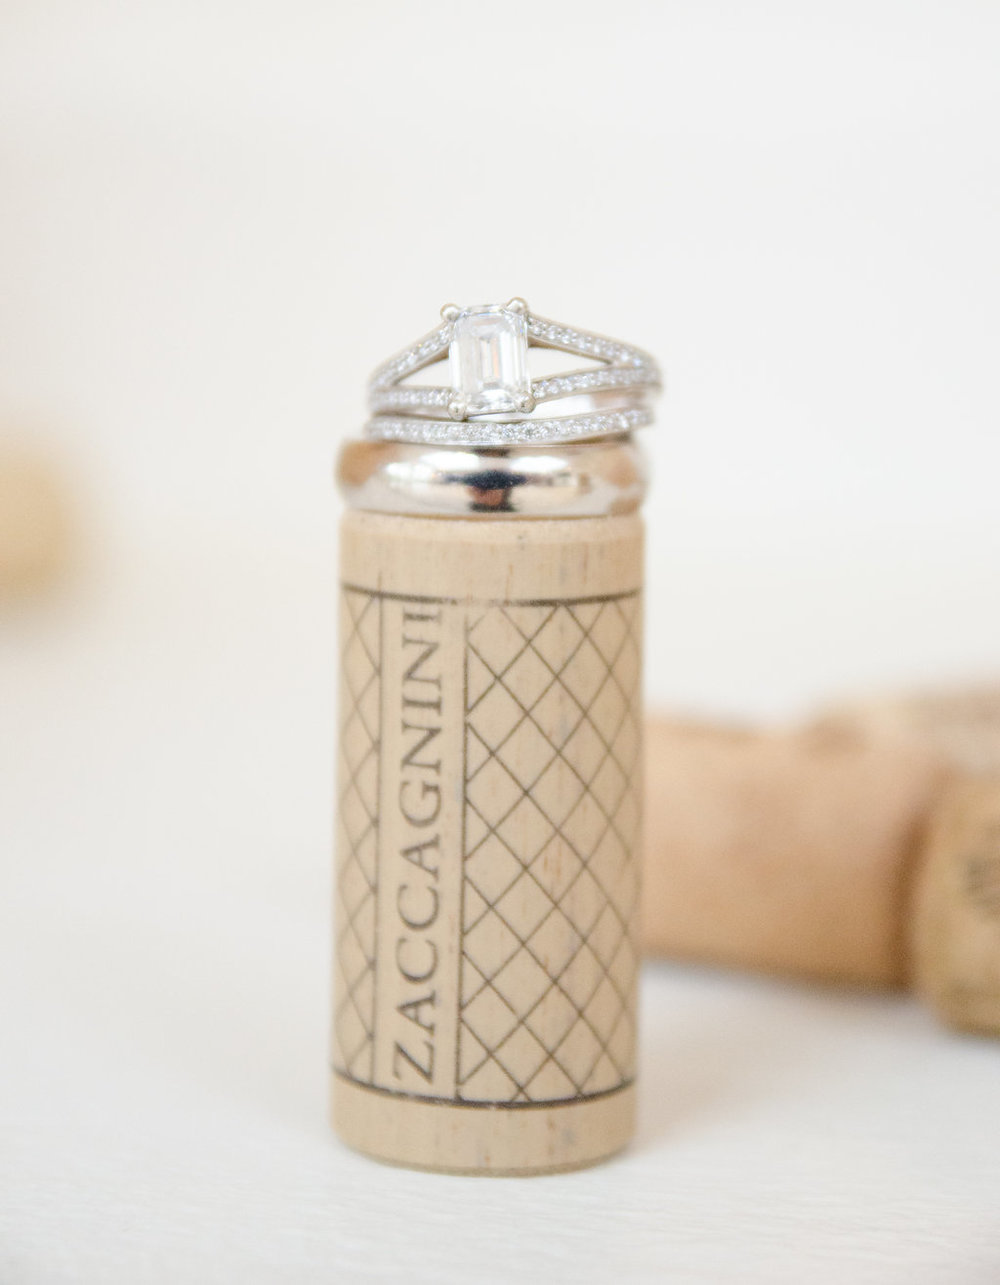 Whitehall Estate and Winery Wedding ring on wine cork Photo